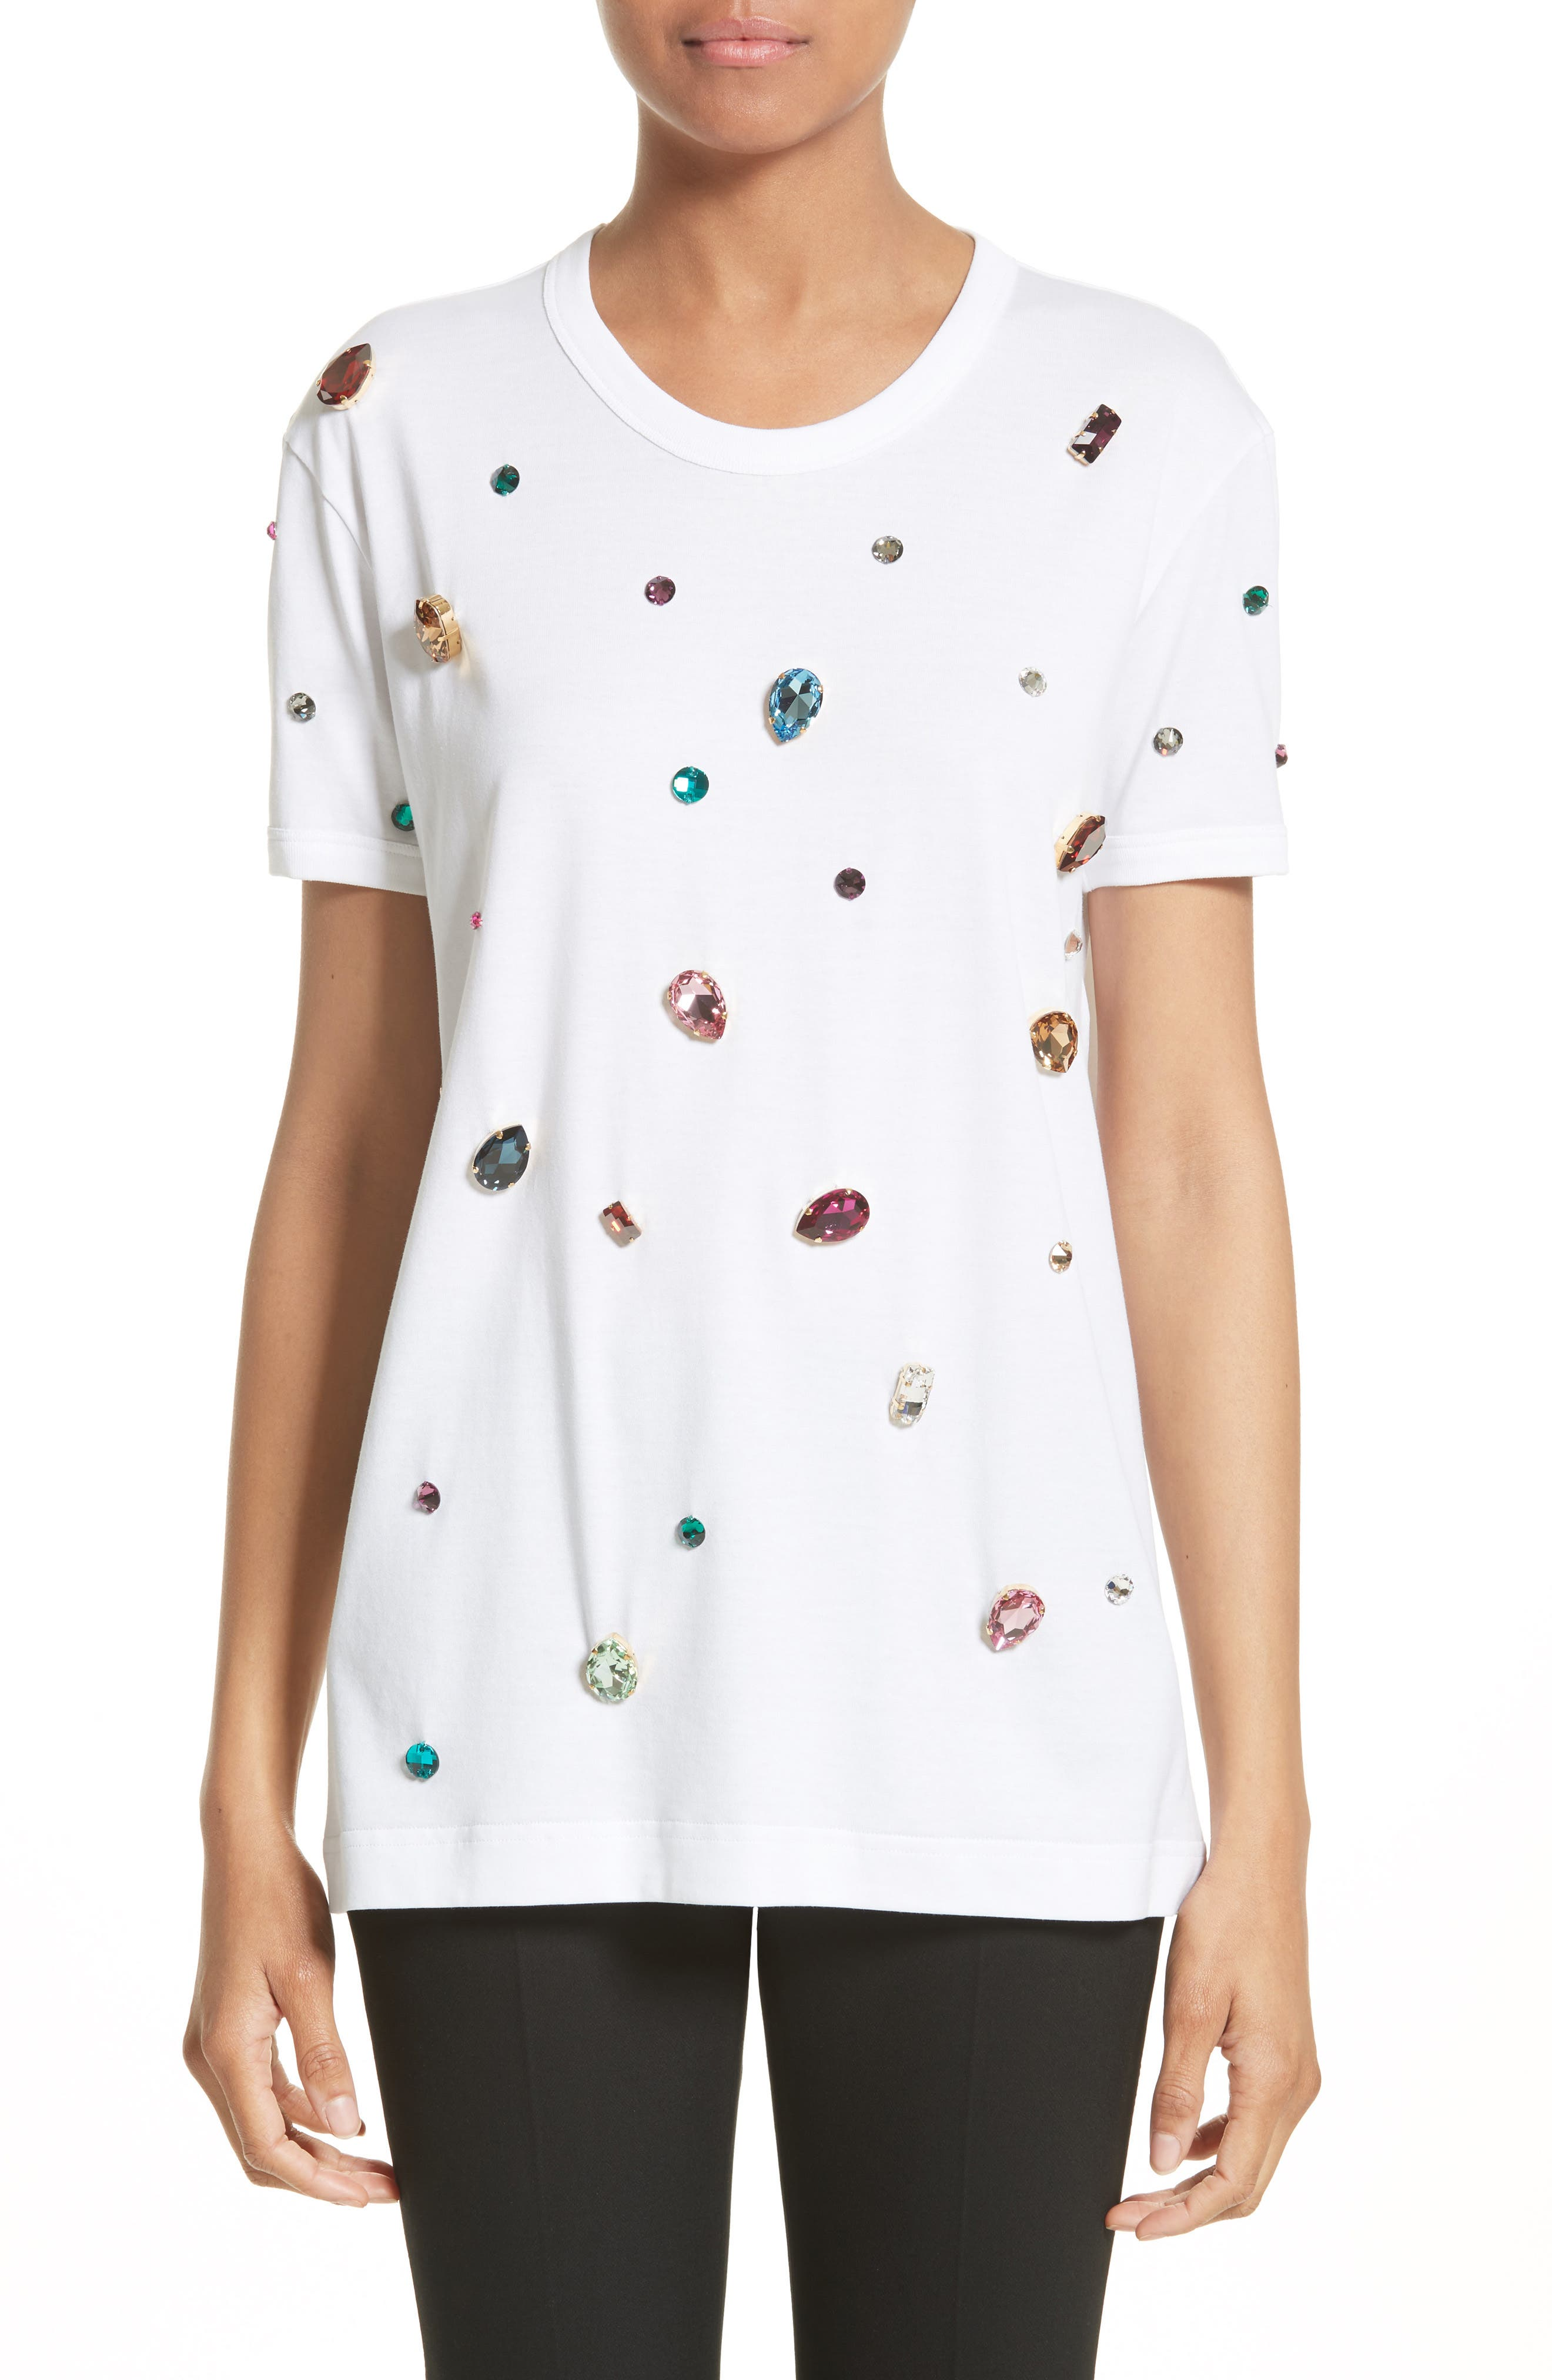 DOLCE&GABBANA Jewel Cotton Tee